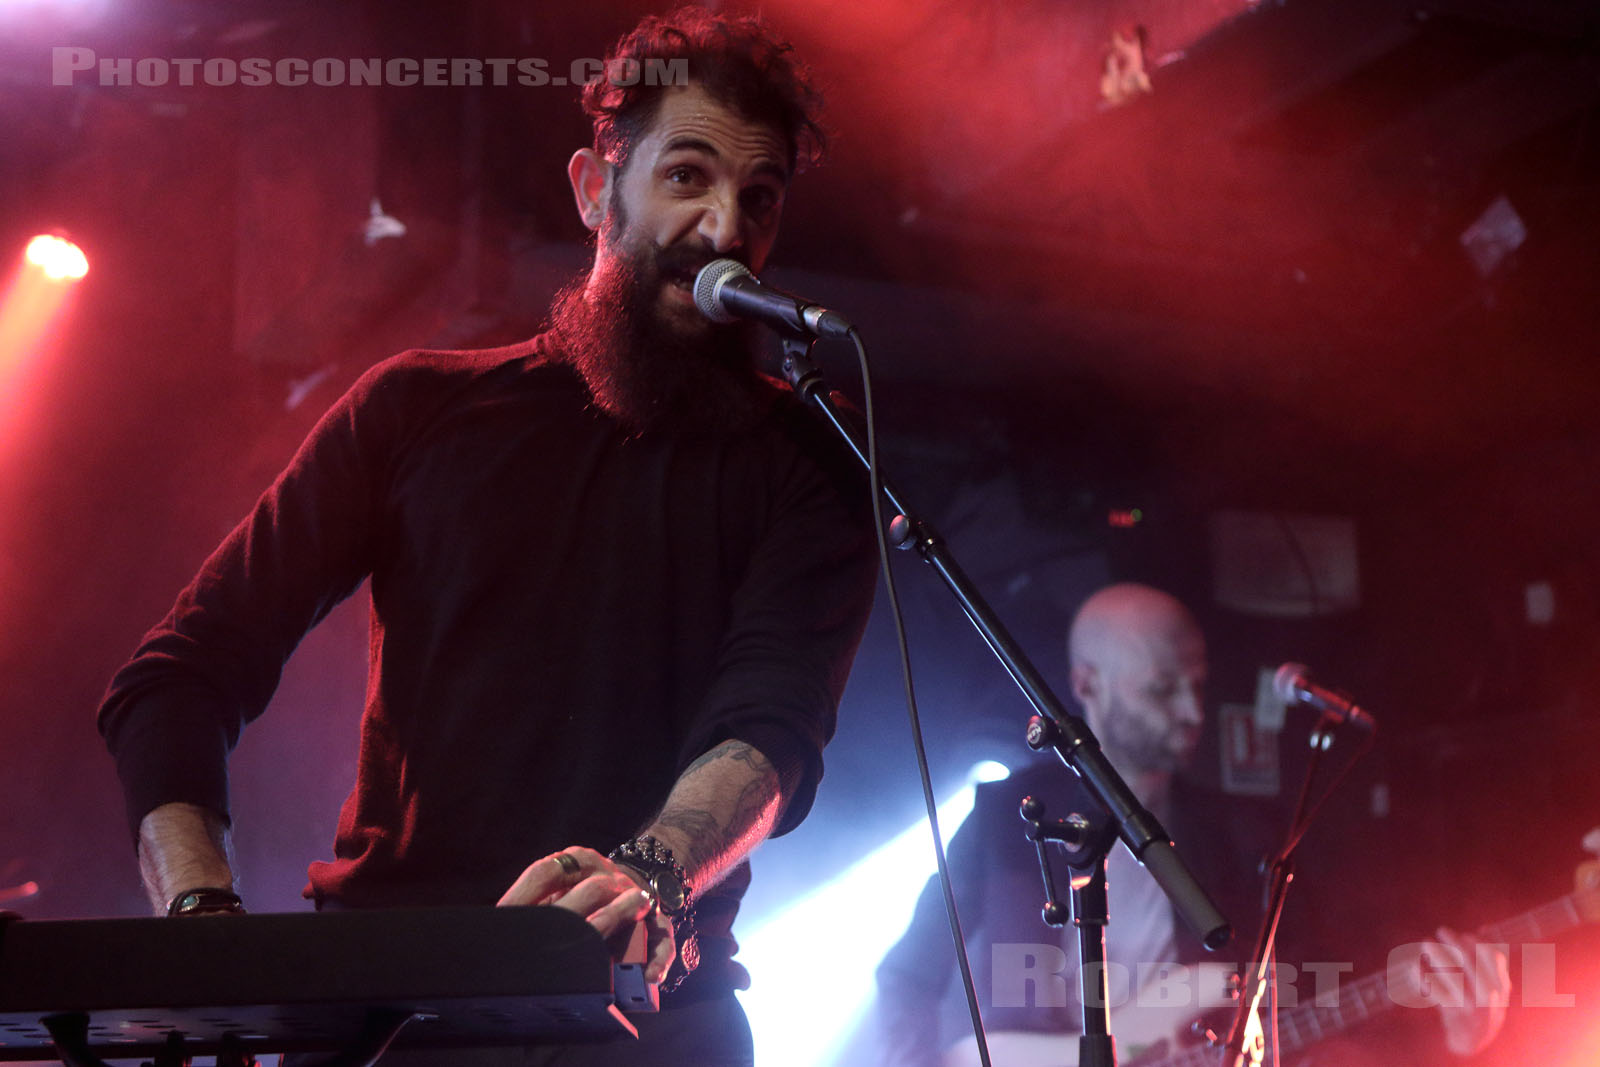 THE WANTON BISHOPS - 2015-10-15 - PARIS - Bus Palladium